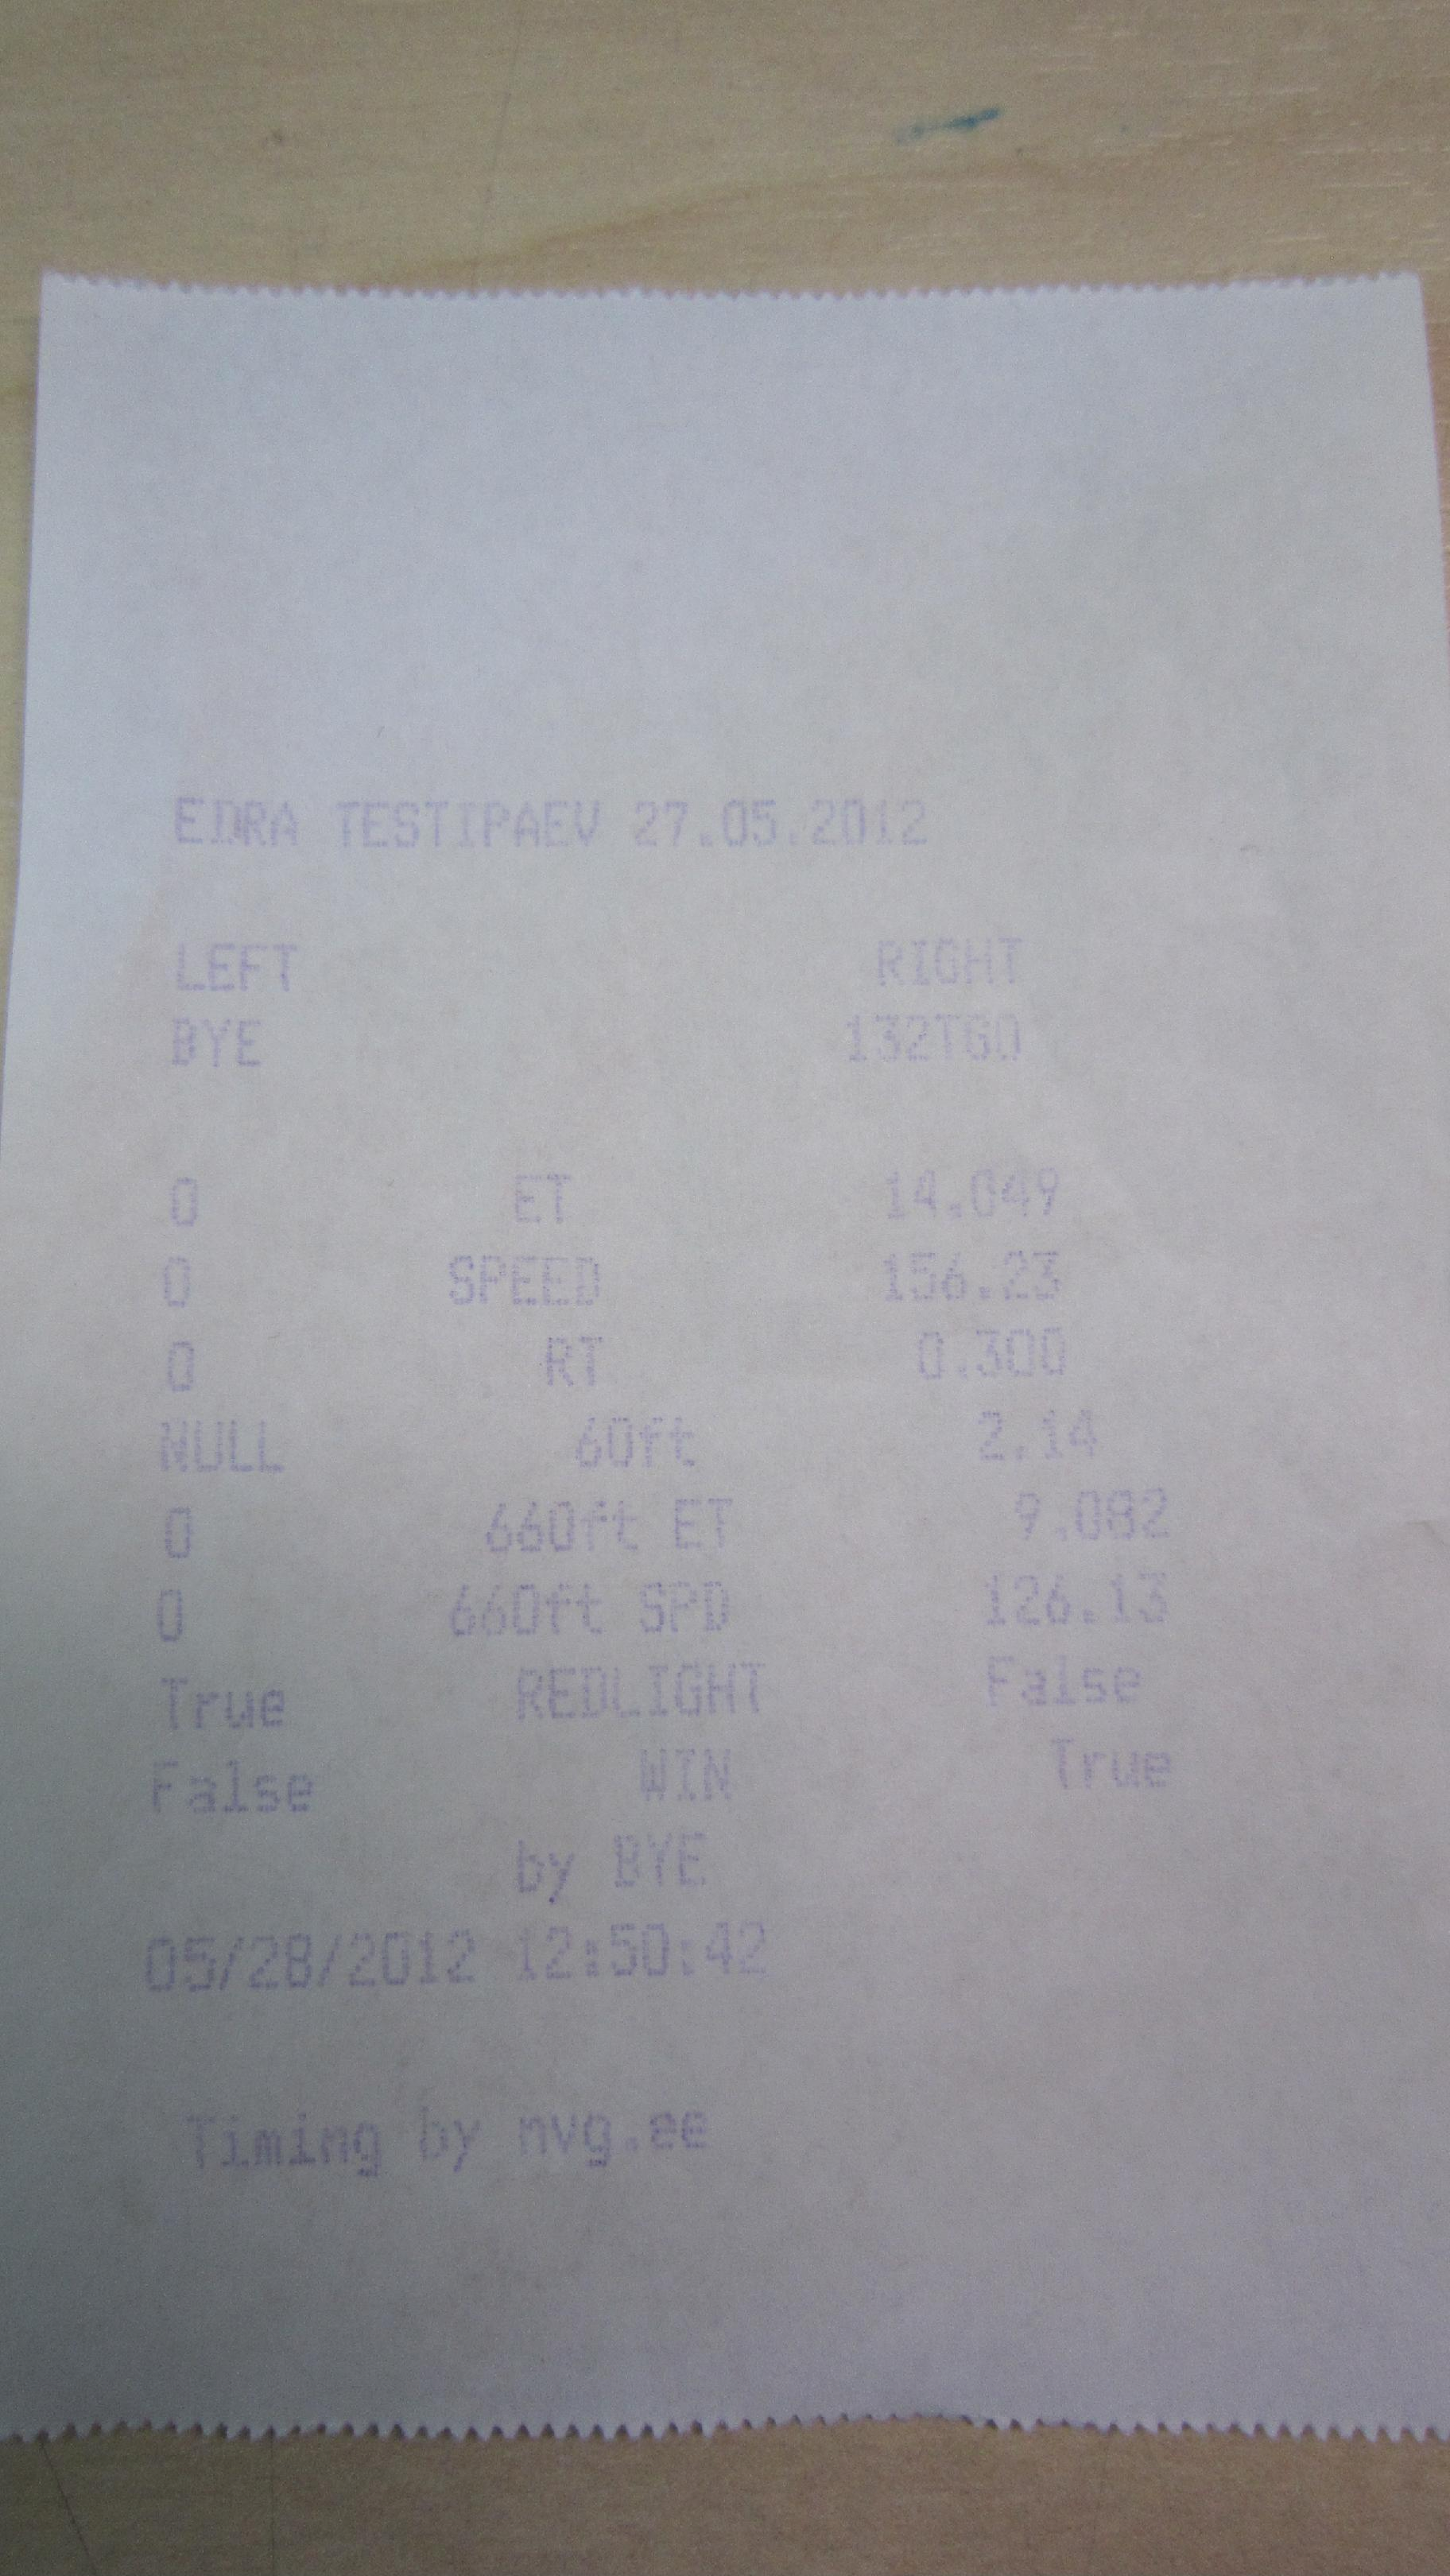 BMW 540i Timeslip Scan